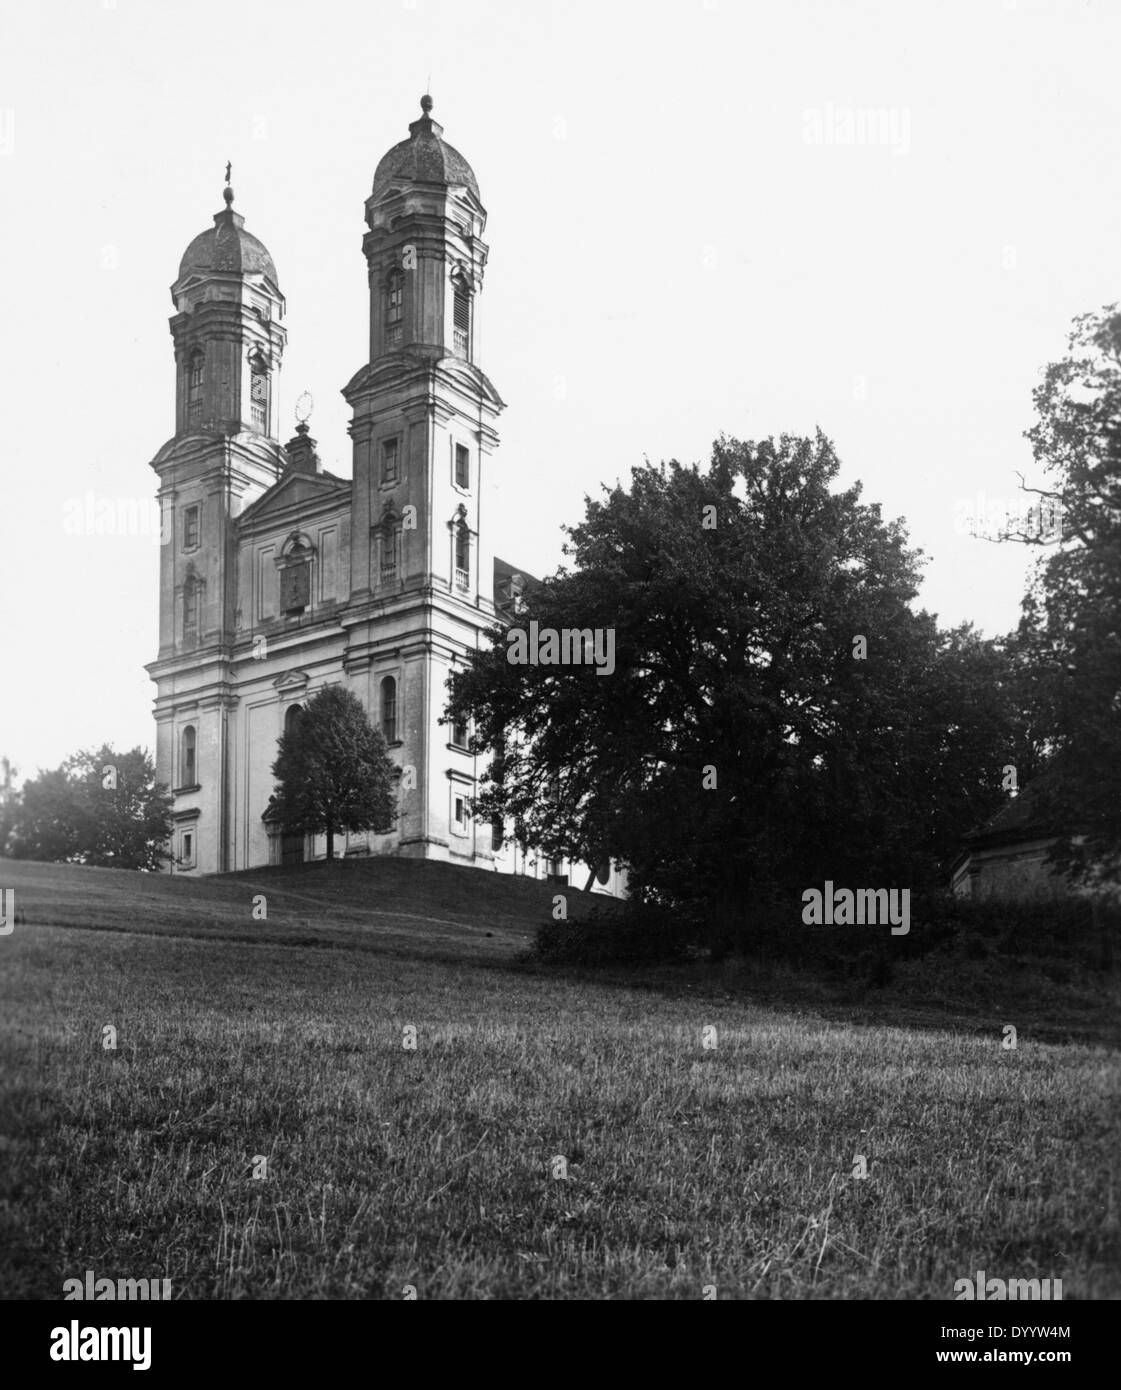 Pilgrimage church in Ellwangen, 1931 - Stock Image